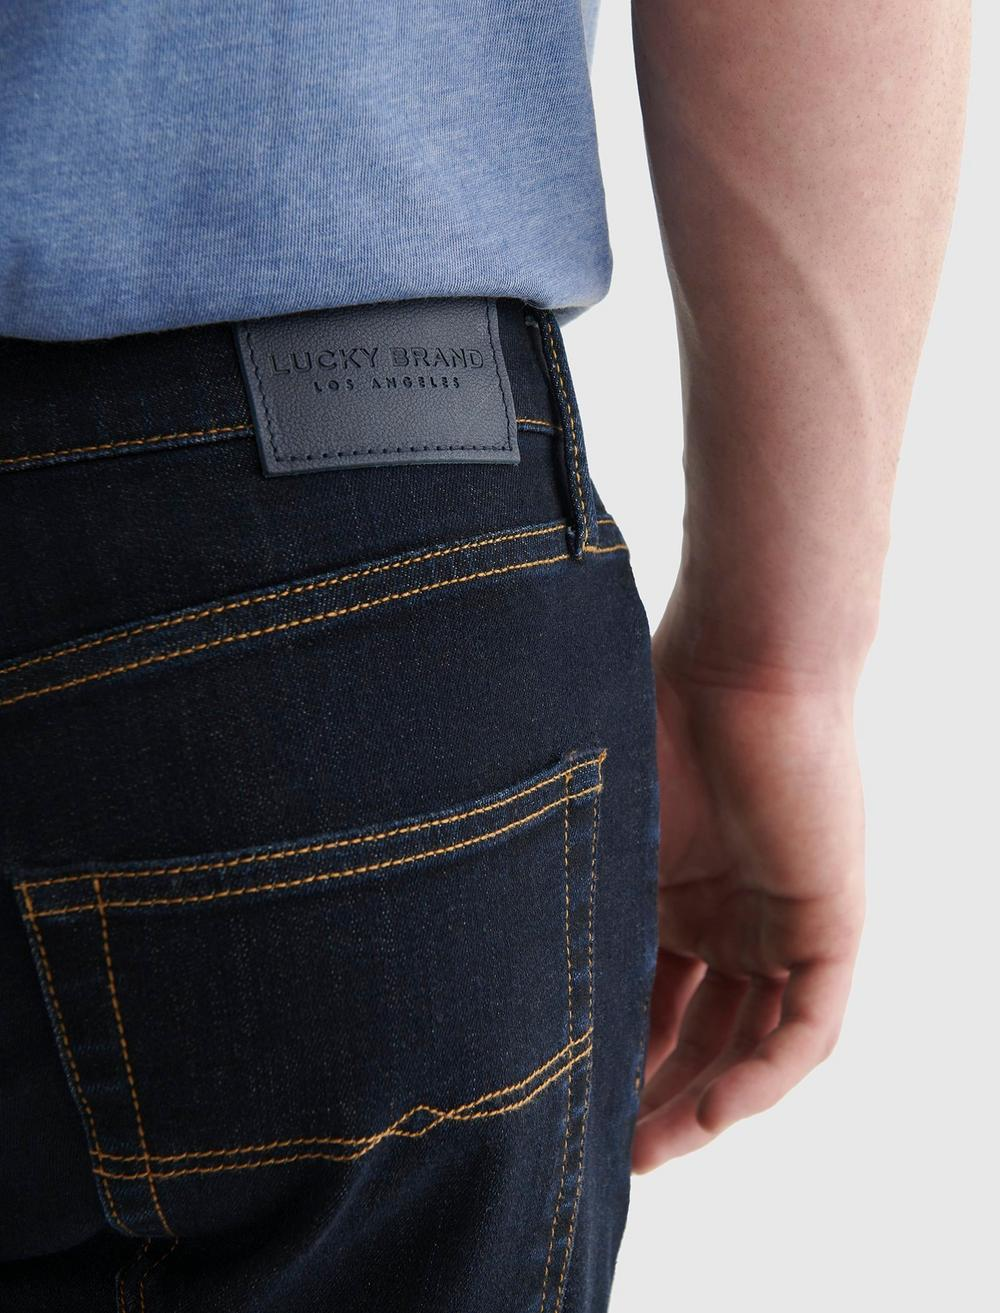 411 ATHLETIC TAPER COOLMAX STRETCH JEAN, image 5